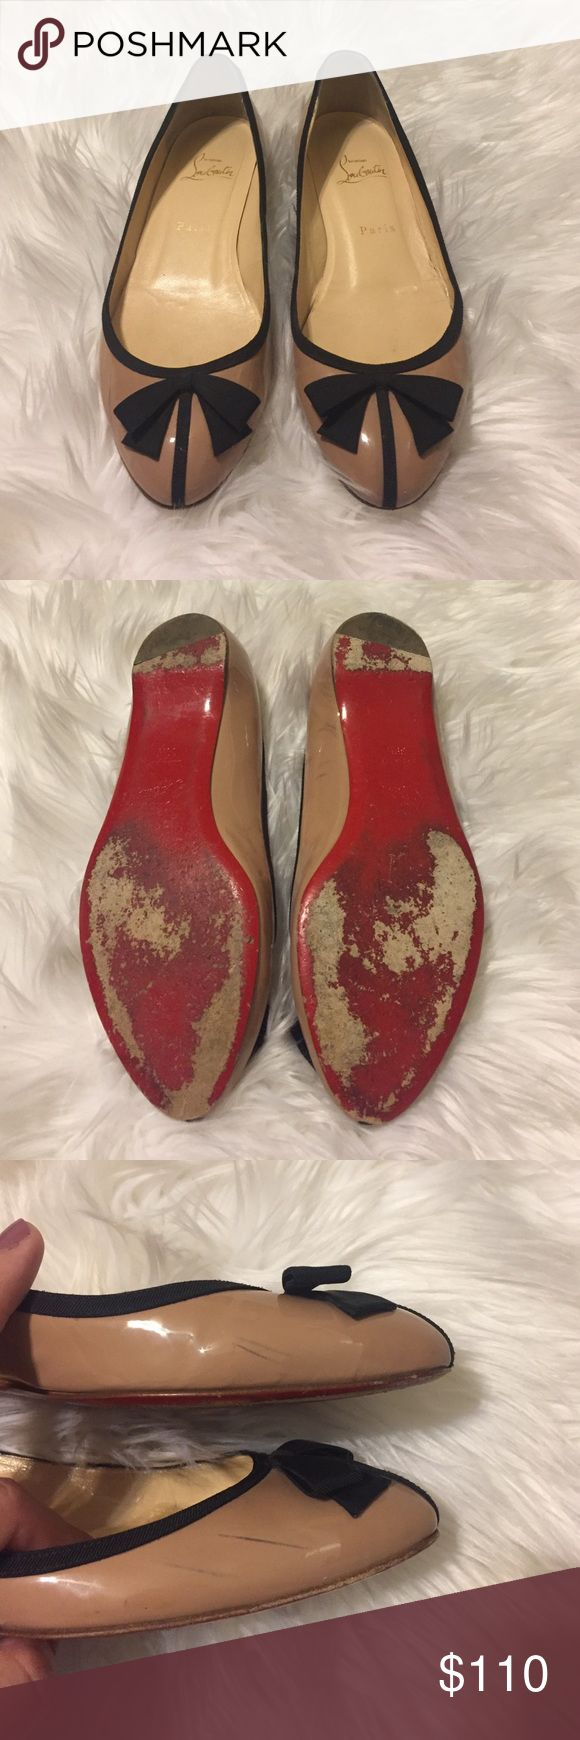 Christian Louboutin flats Tan and black Louboutin flats. Bought these from another posher but they are too tight. The posher I bought from said they are authentic. There are a few small scuffs as pictured above. Still have a lot of life left! Christian Louboutin Shoes